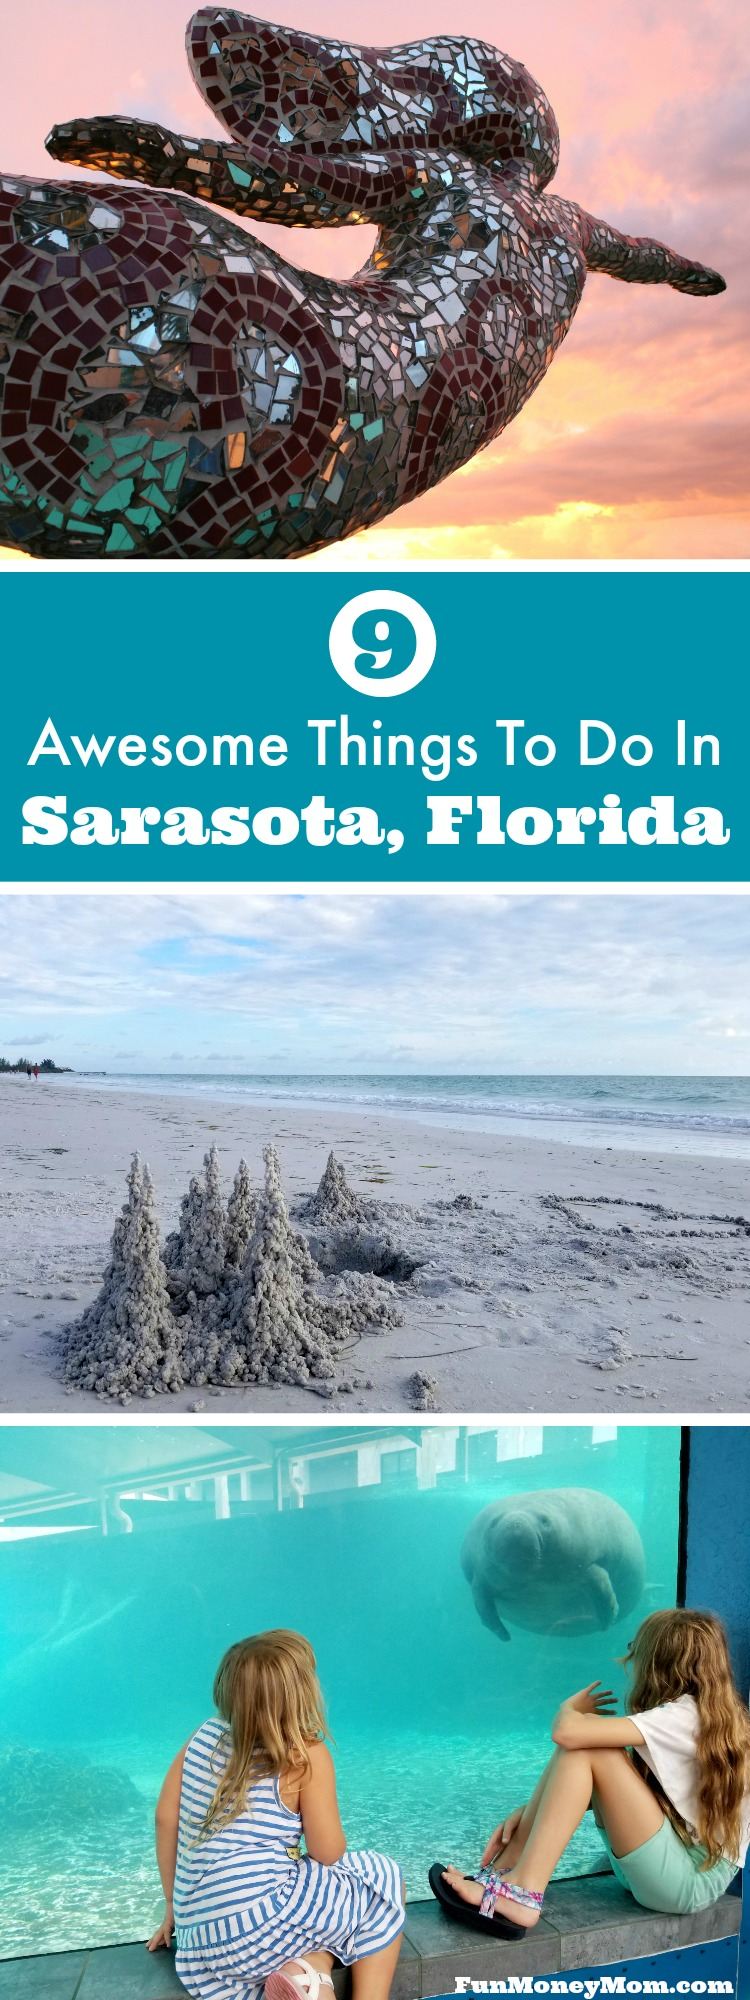 When you live in Sarasota, Florida, you get a little spoiled. Between the award winning beaches and all the great attractions, we never run out of fun things to do! Find out why #YouOtaVisit for your next family vacation!